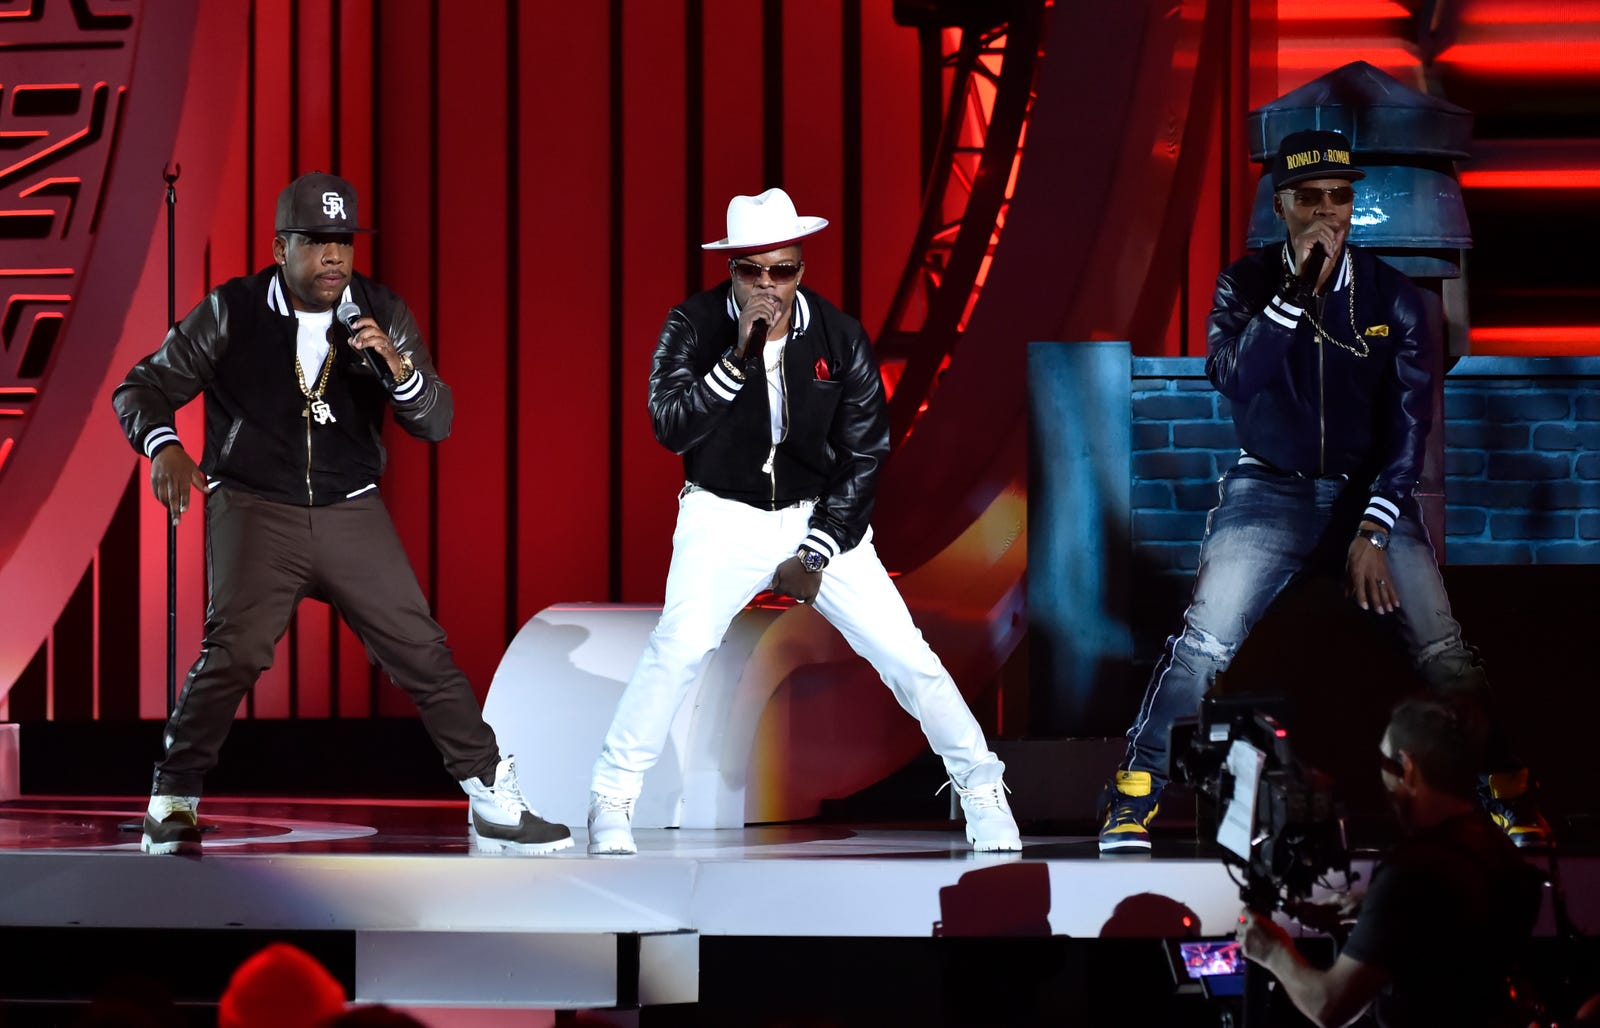 (L-R) Michael Bivins, Ricky Bell, and Ronnie DeVoe of Bell Biv DeVoe perform onstage during the 2018 Soul Train Awards at the Orleans Arena on November 17, 2018 in Las Vegas, Nevada.